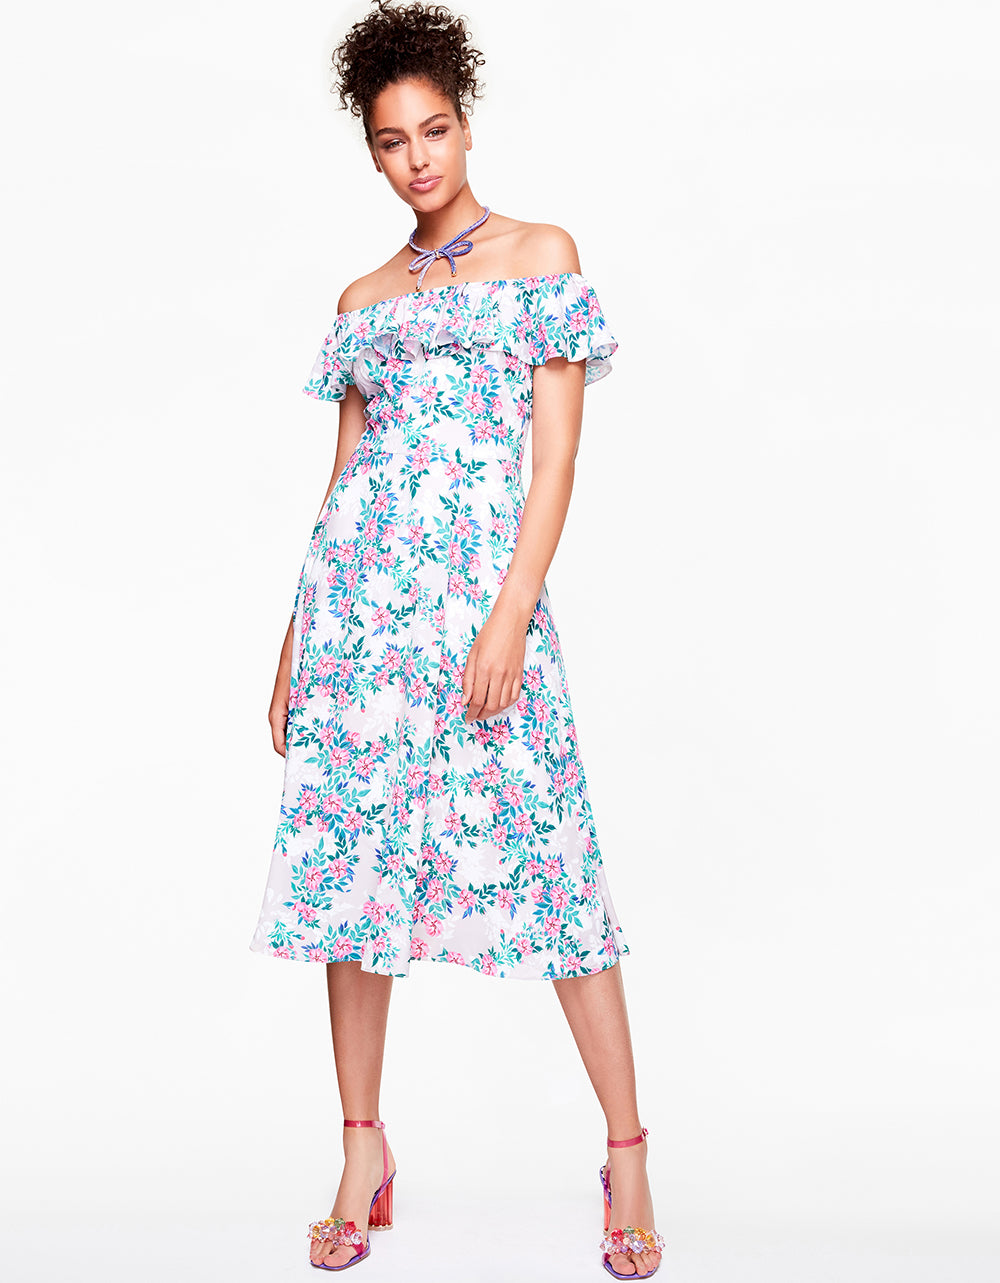 OFF THE CHARTS DRESS MULTI - APPAREL - Betsey Johnson